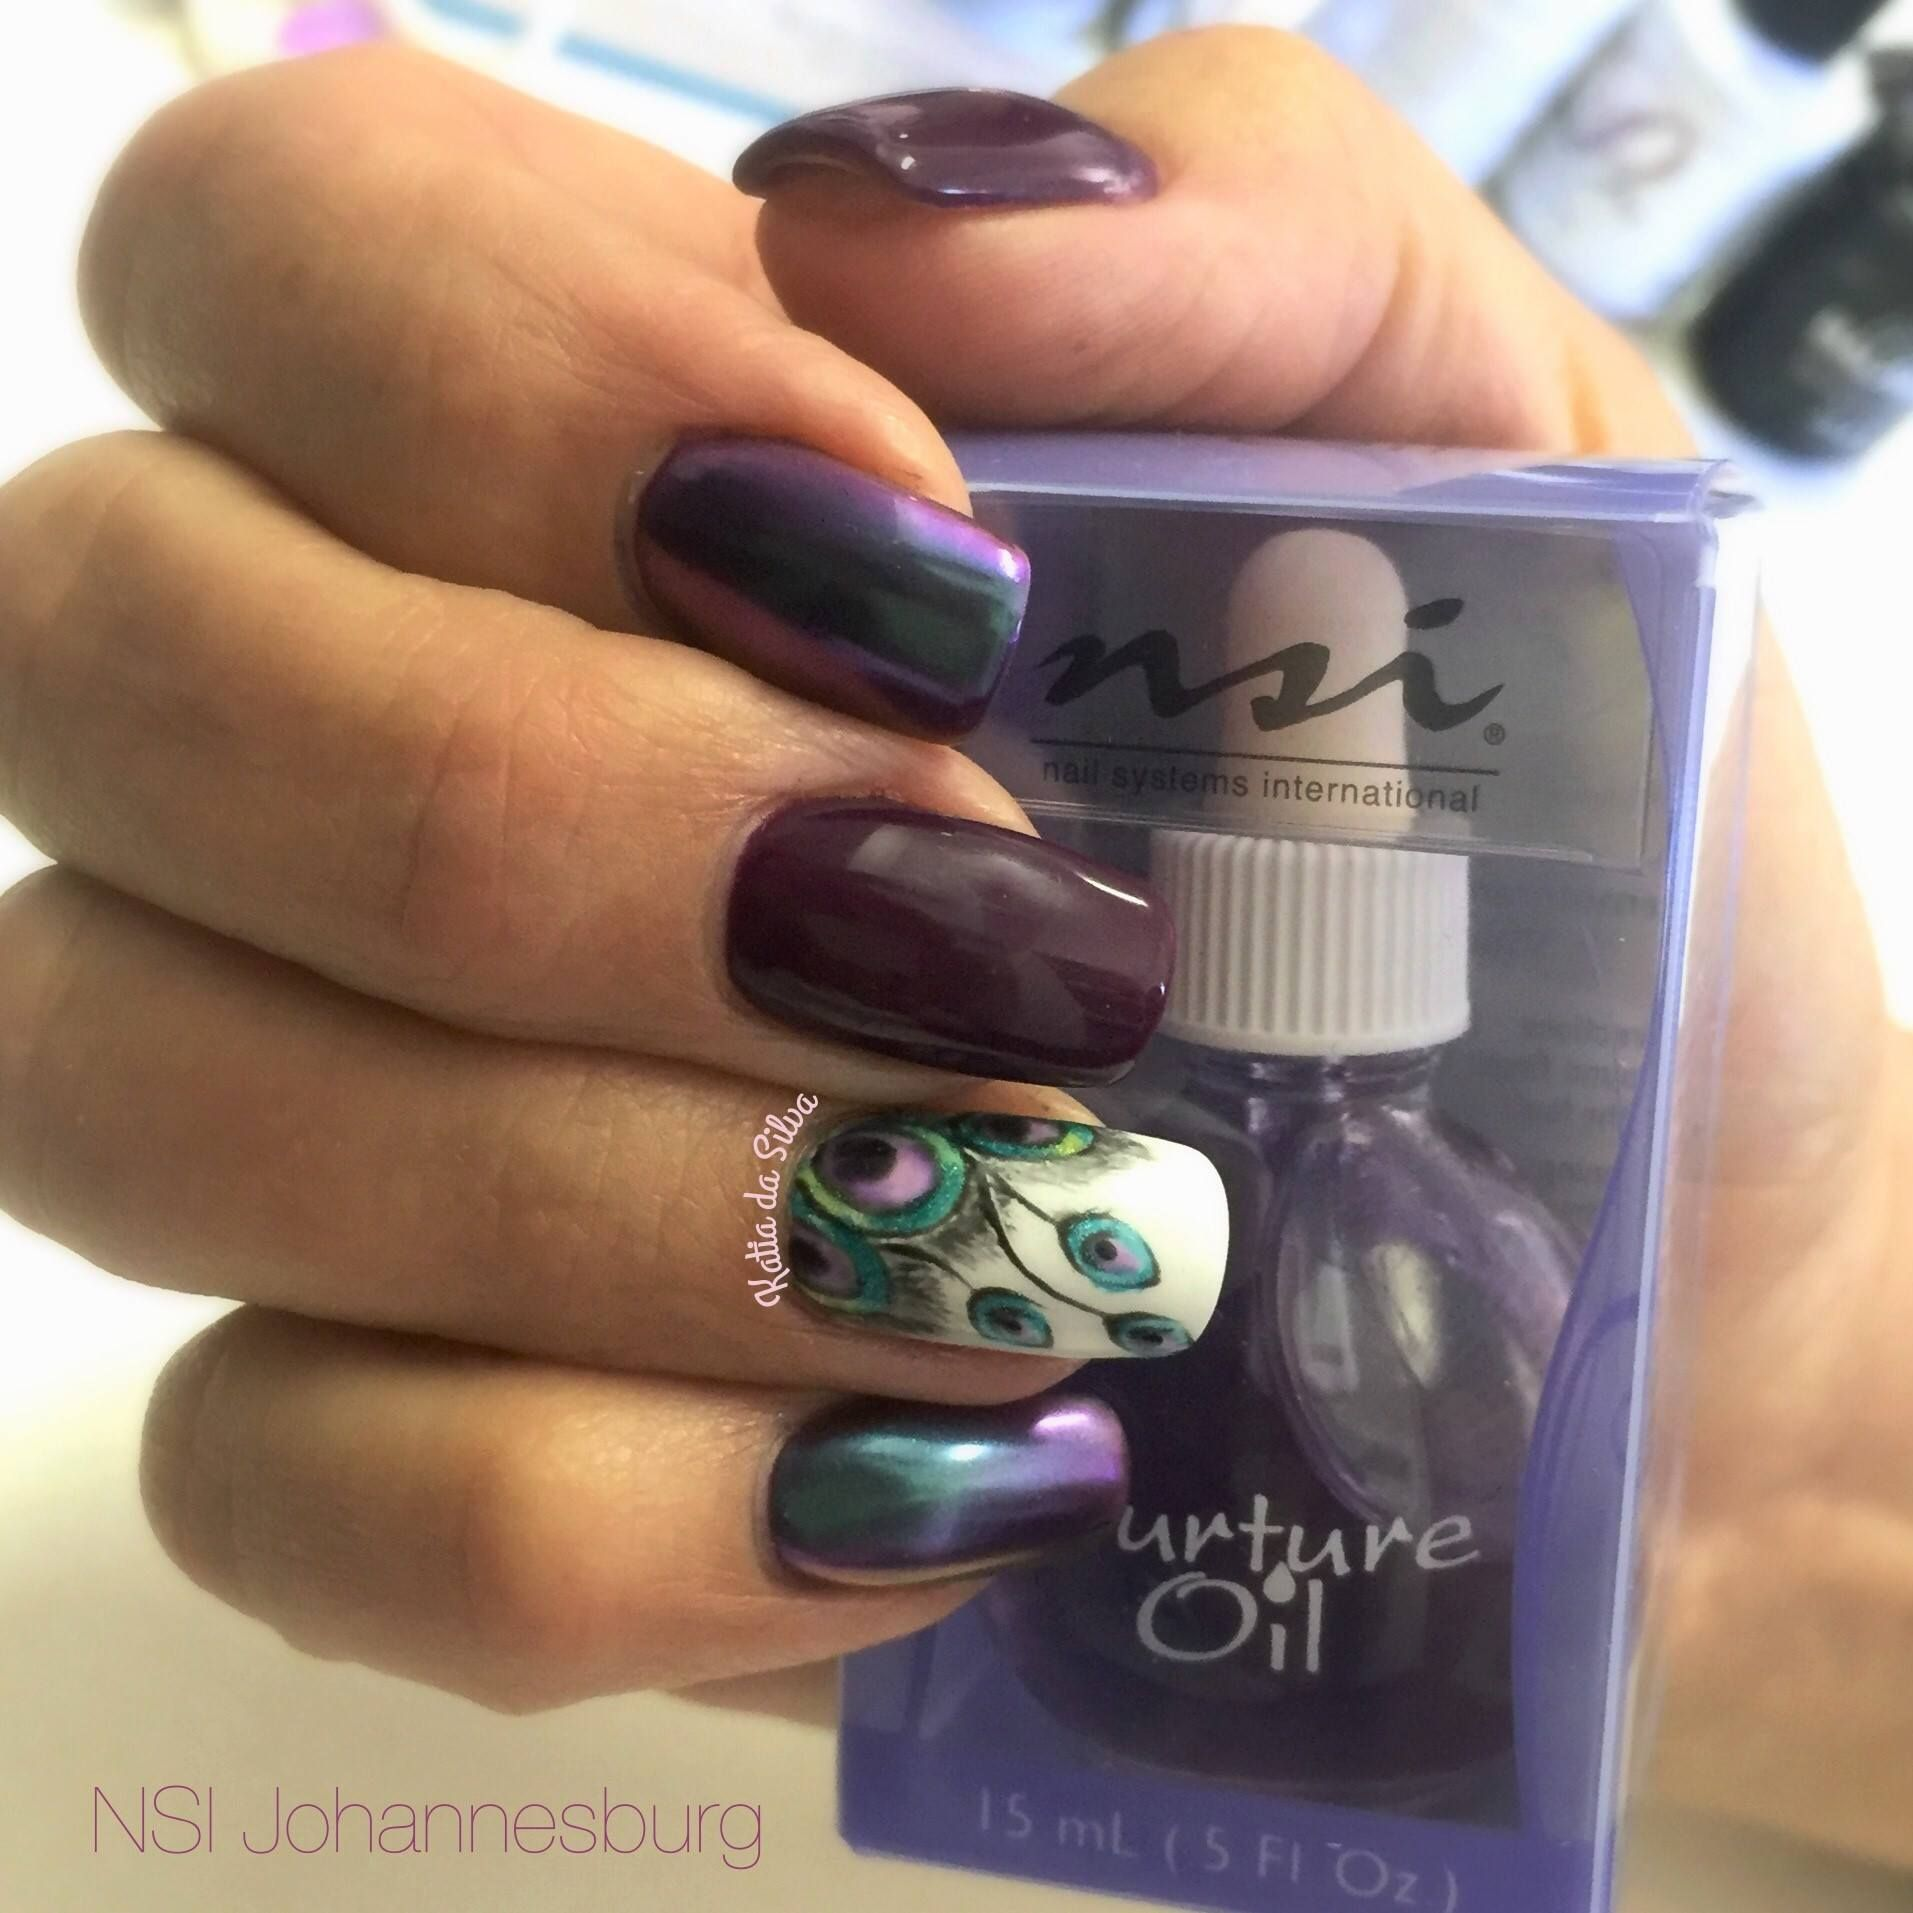 Gorgeous Peacock Nail art! Nurture Oil is amazing for taking care of ...